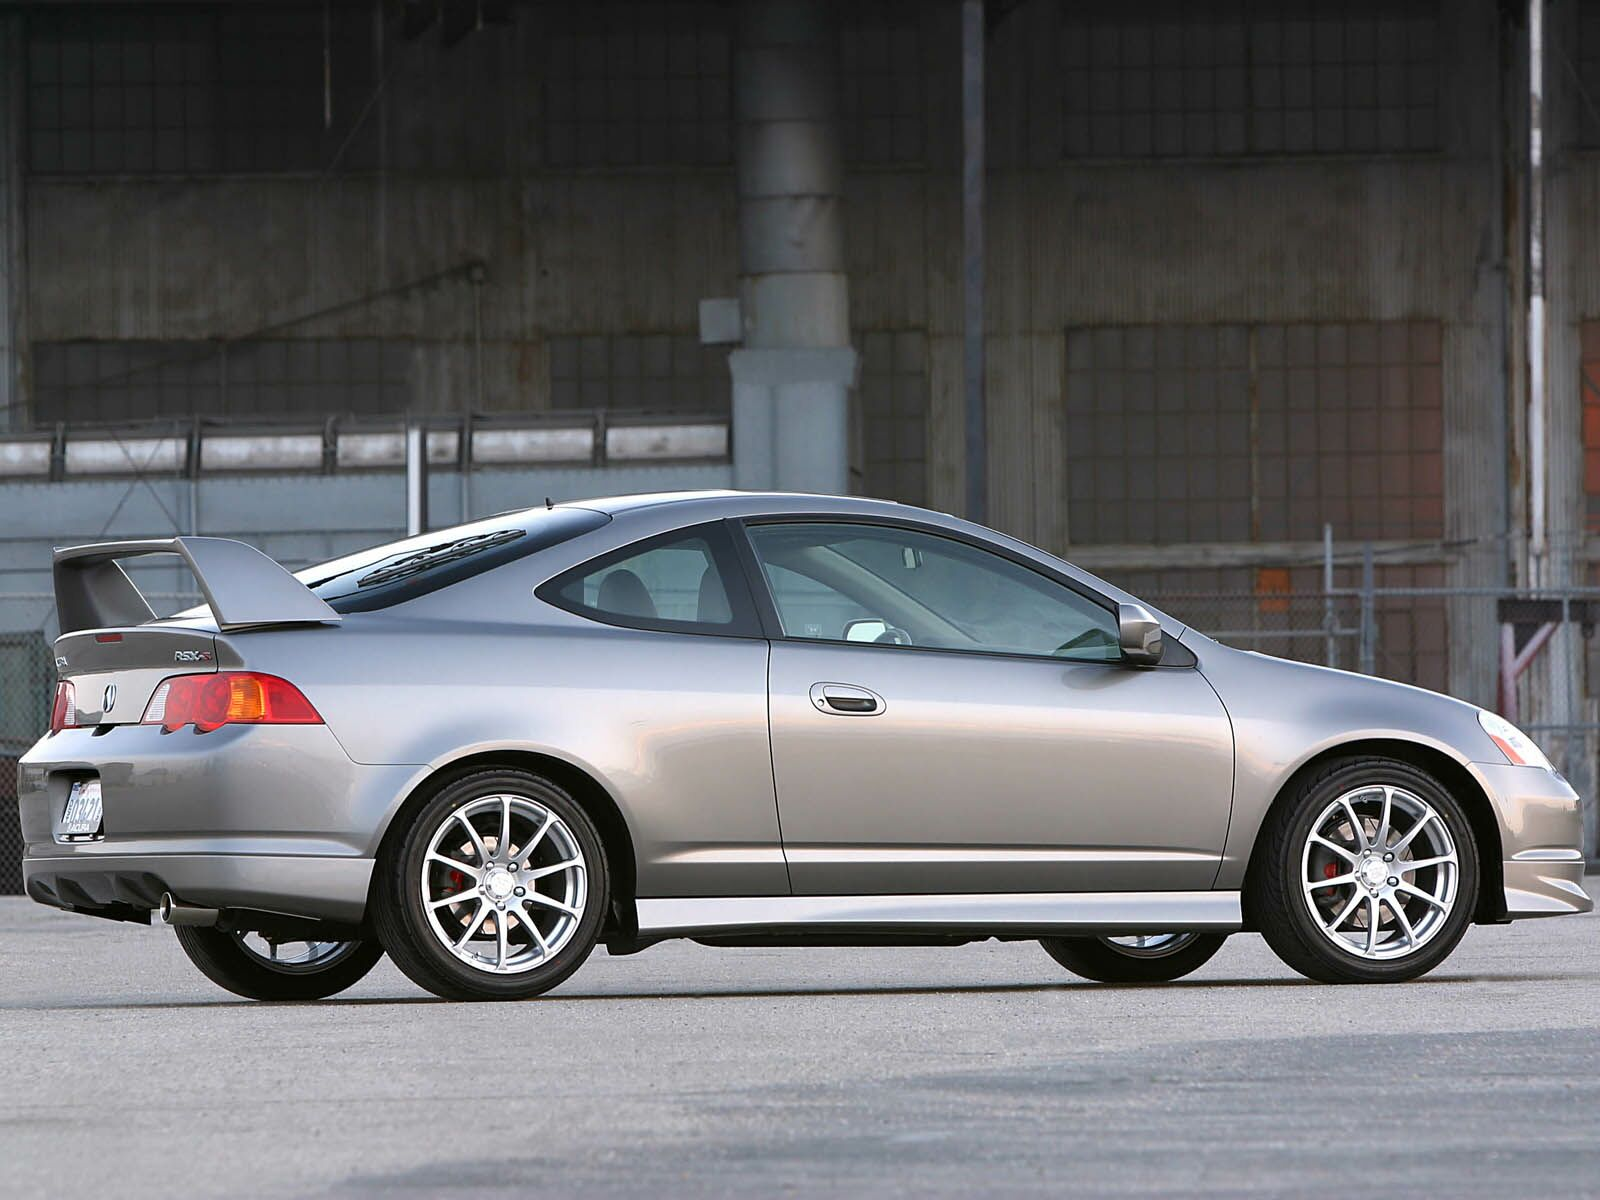 Acura RSX photo 8998